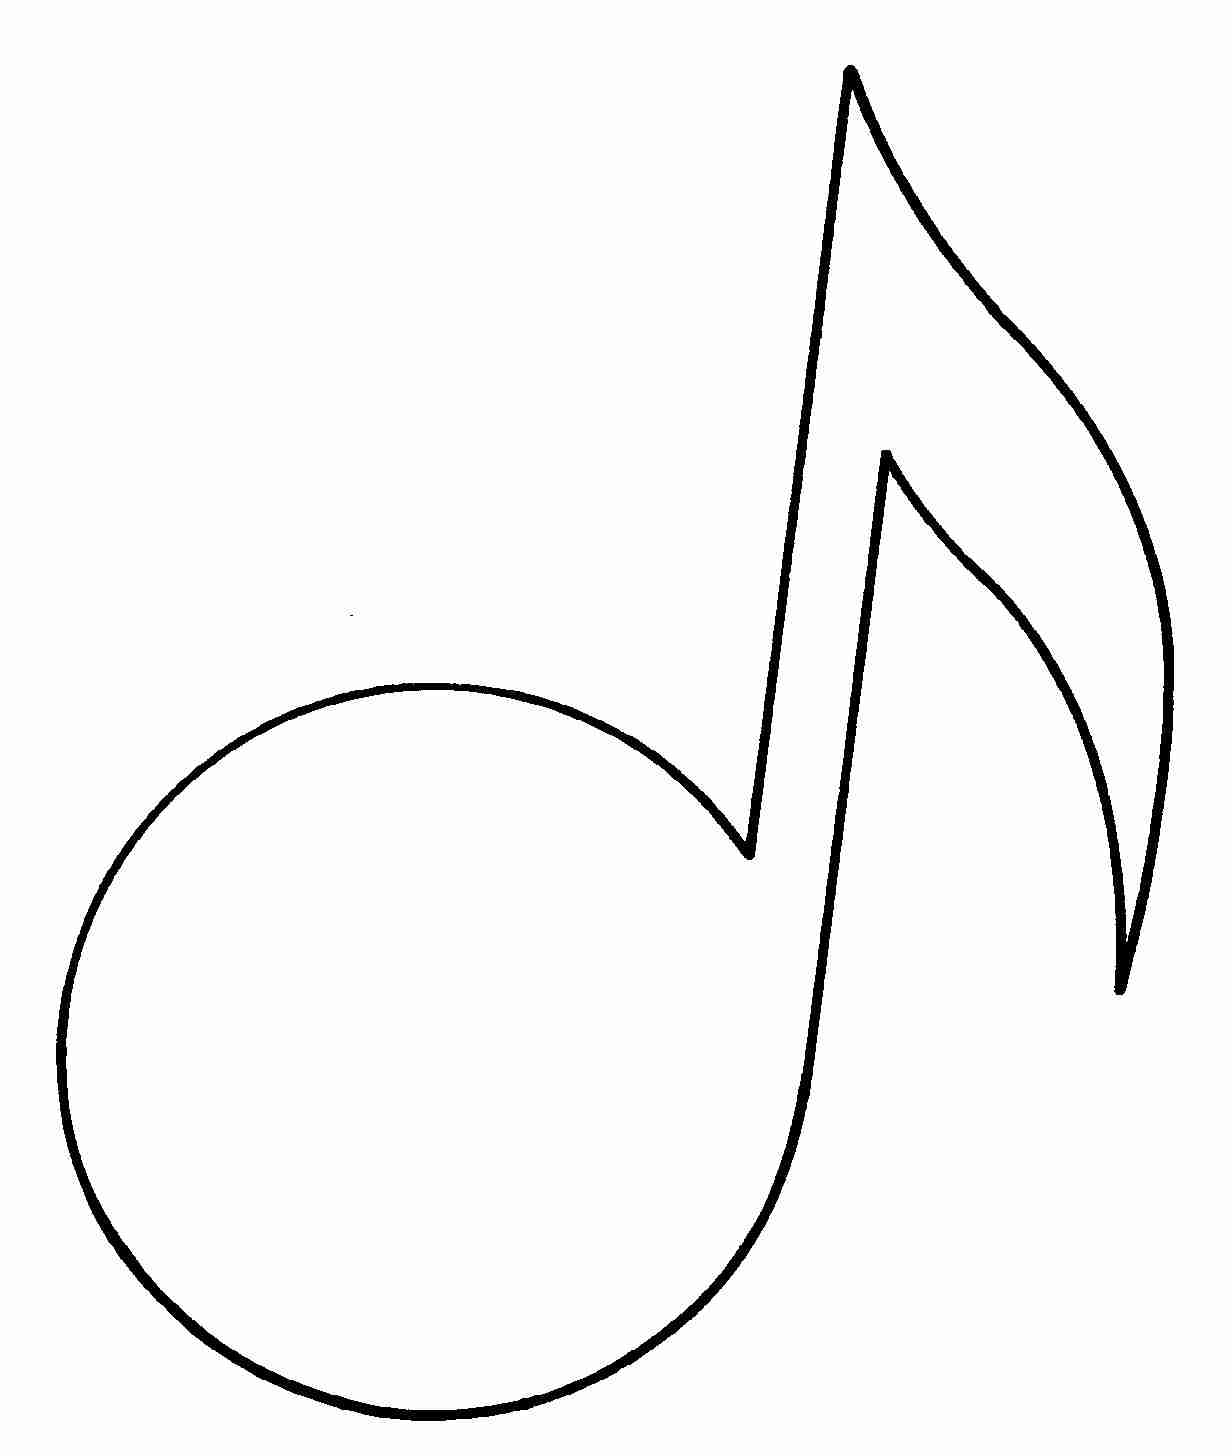 Music Notes Coloring Page to Print Of Printable Music Note Coloring Pages for Kids Collection